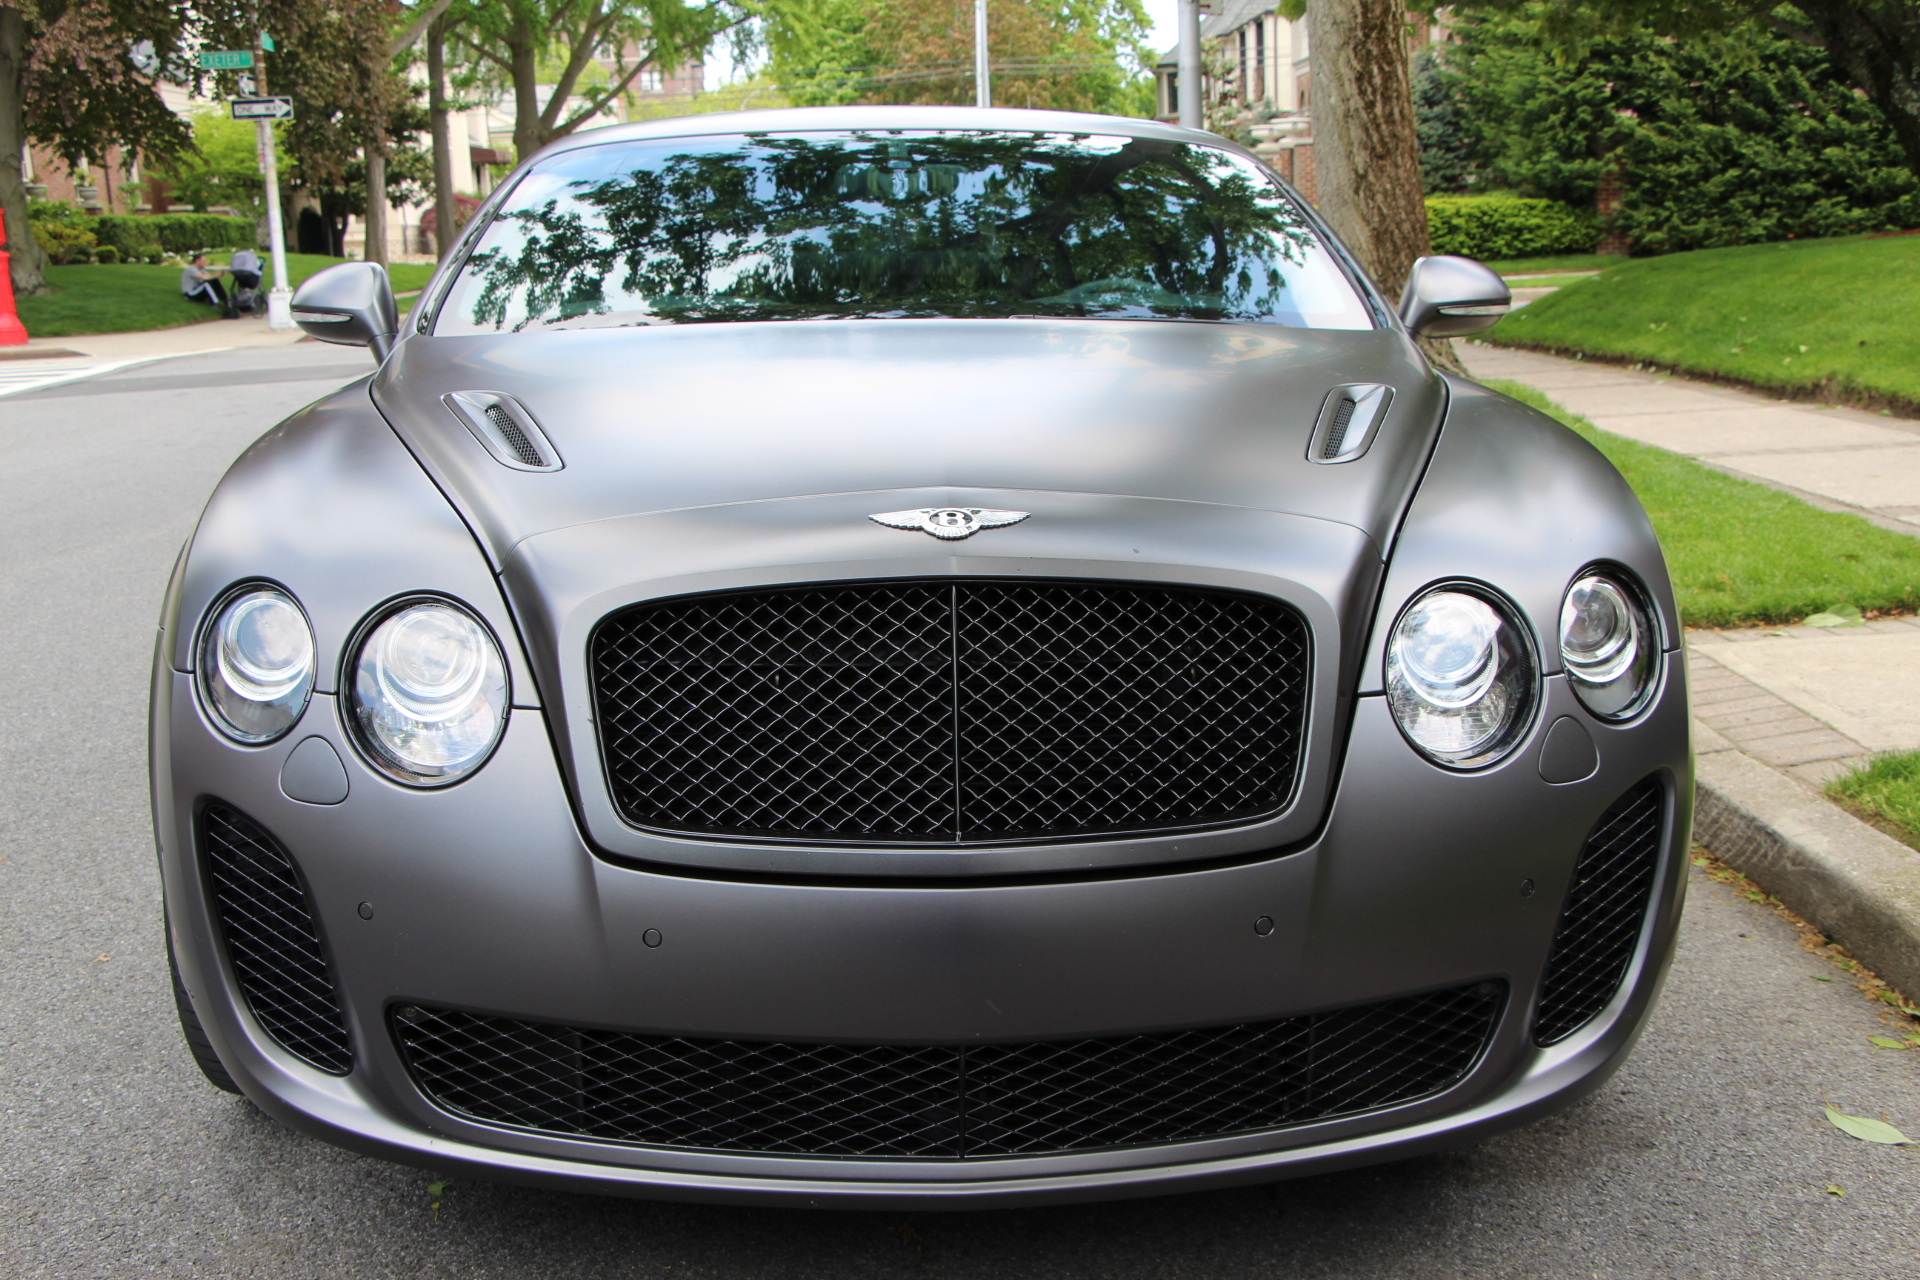 Buy Used 2010 Bentley Continental Gt Supersports For 79 900 From Trusted Dealer In Brooklyn Ny